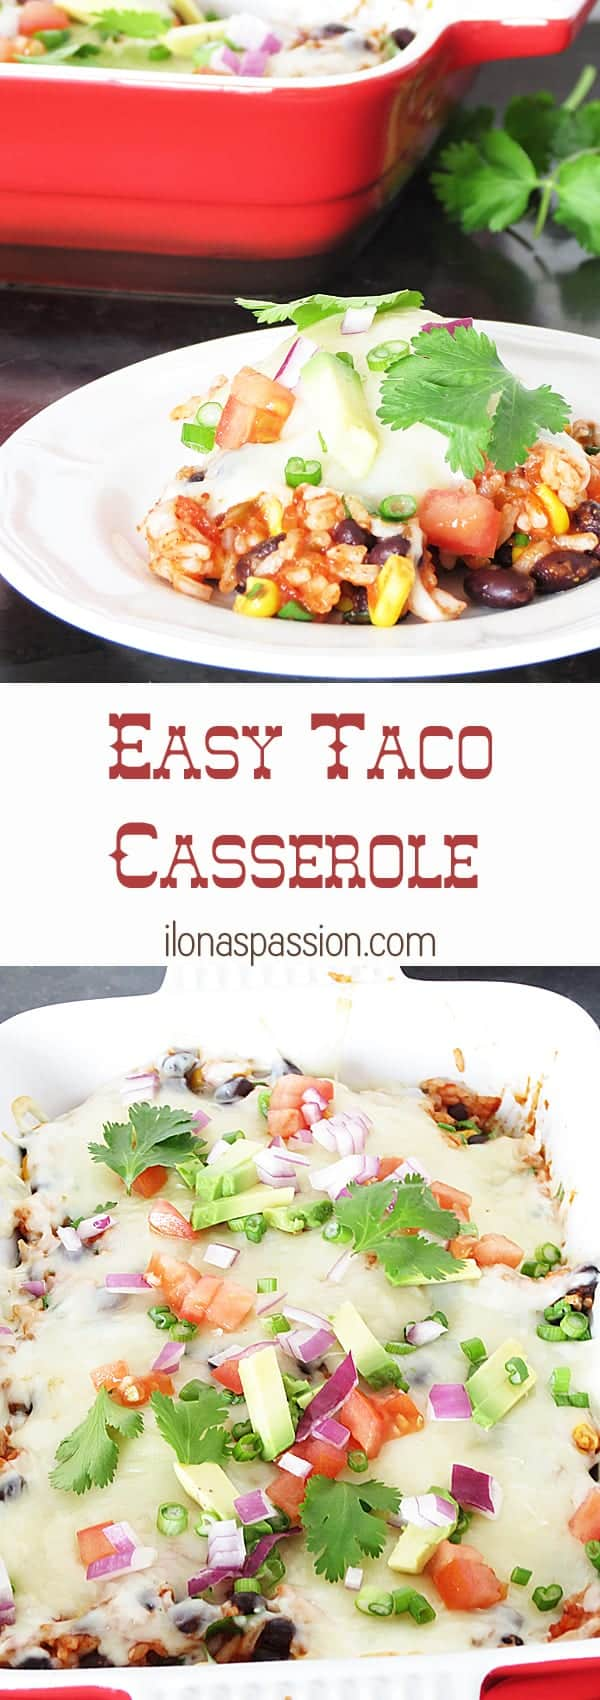 Easy Taco Casserole: meatless and delicious by ilonaspassion.com